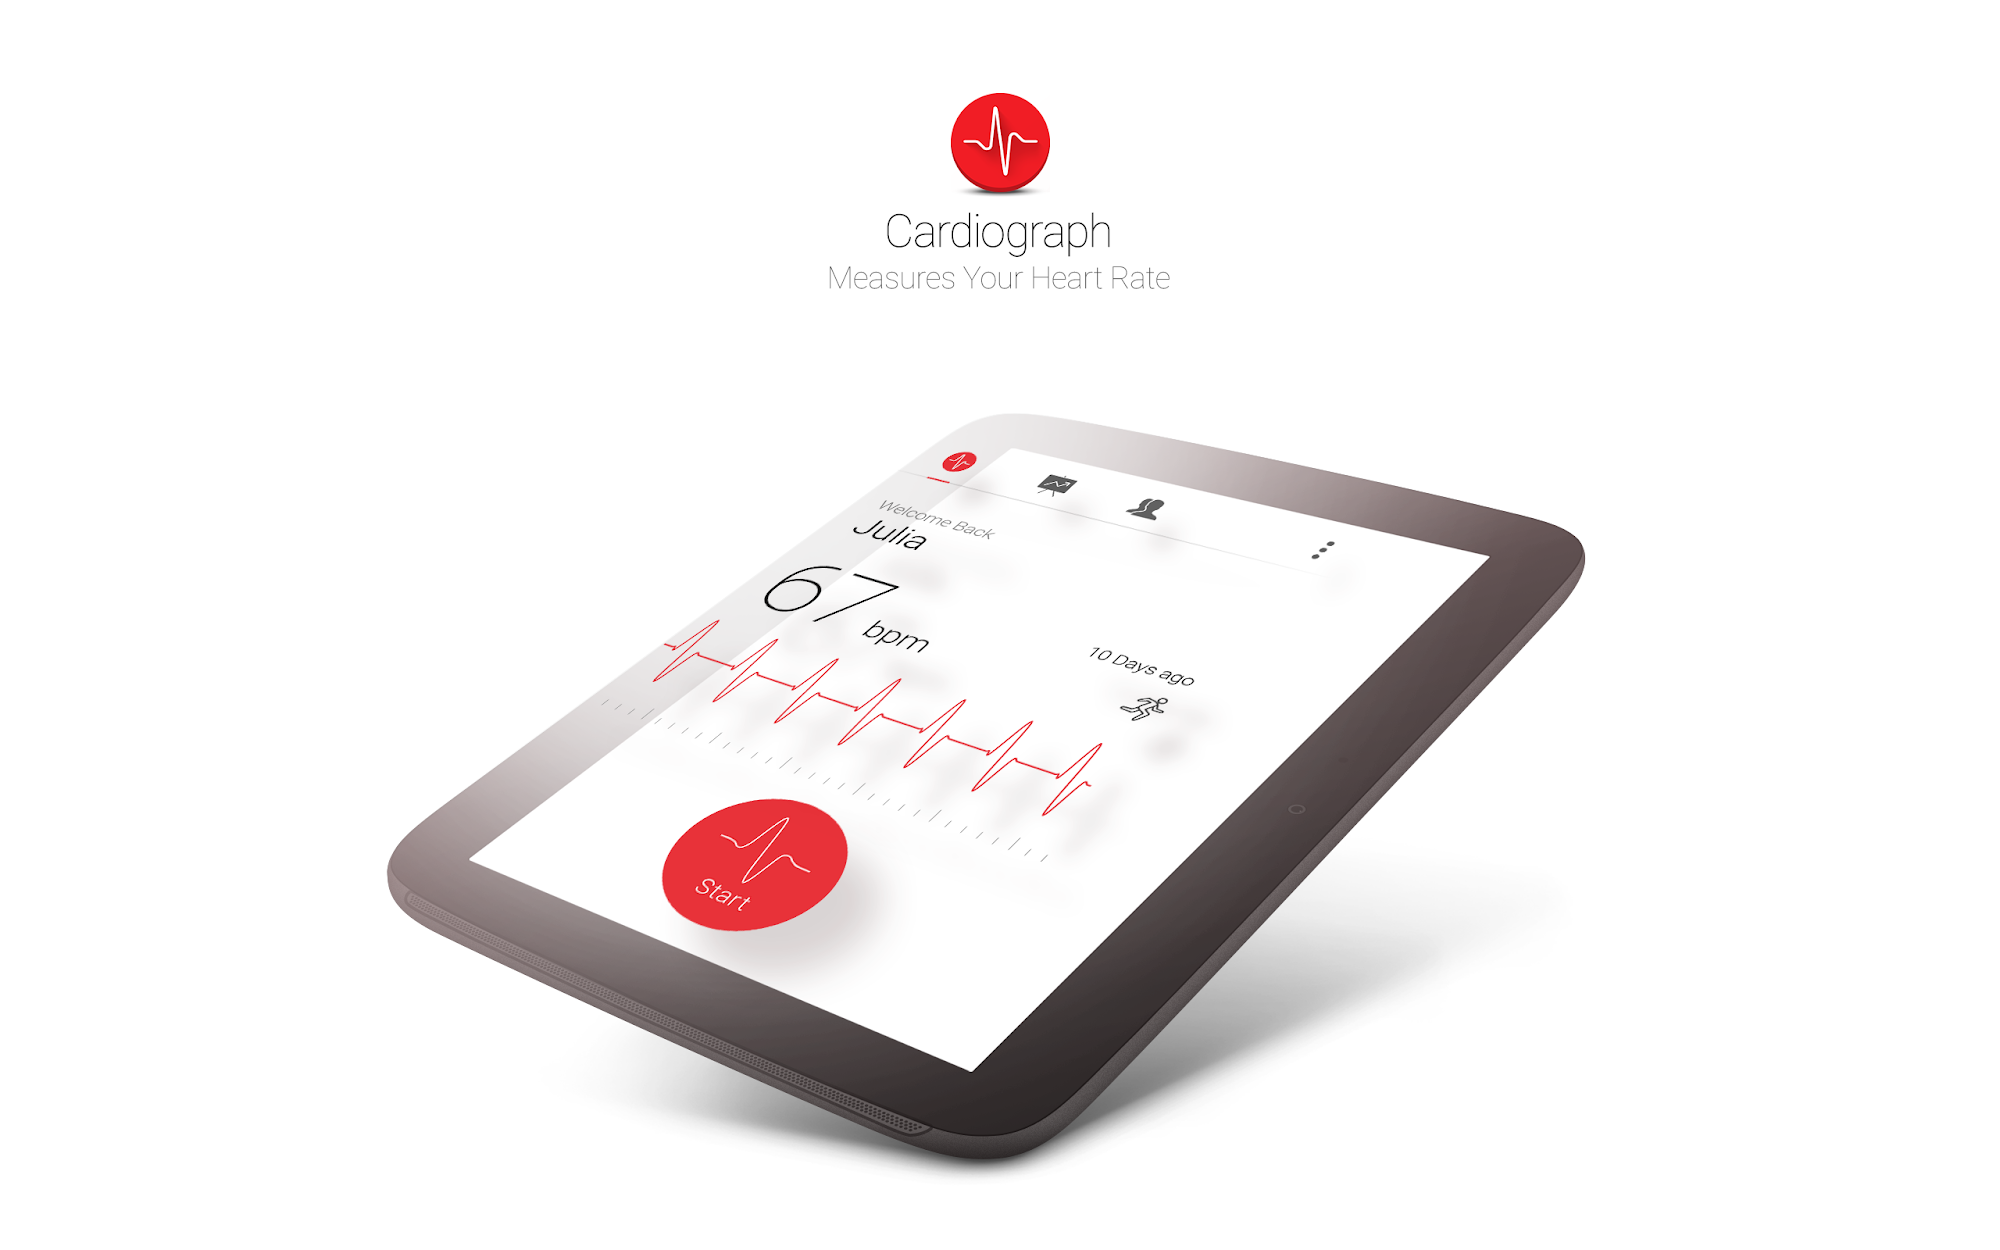 Cardiograph - Heart Rate Meter screenshot #6